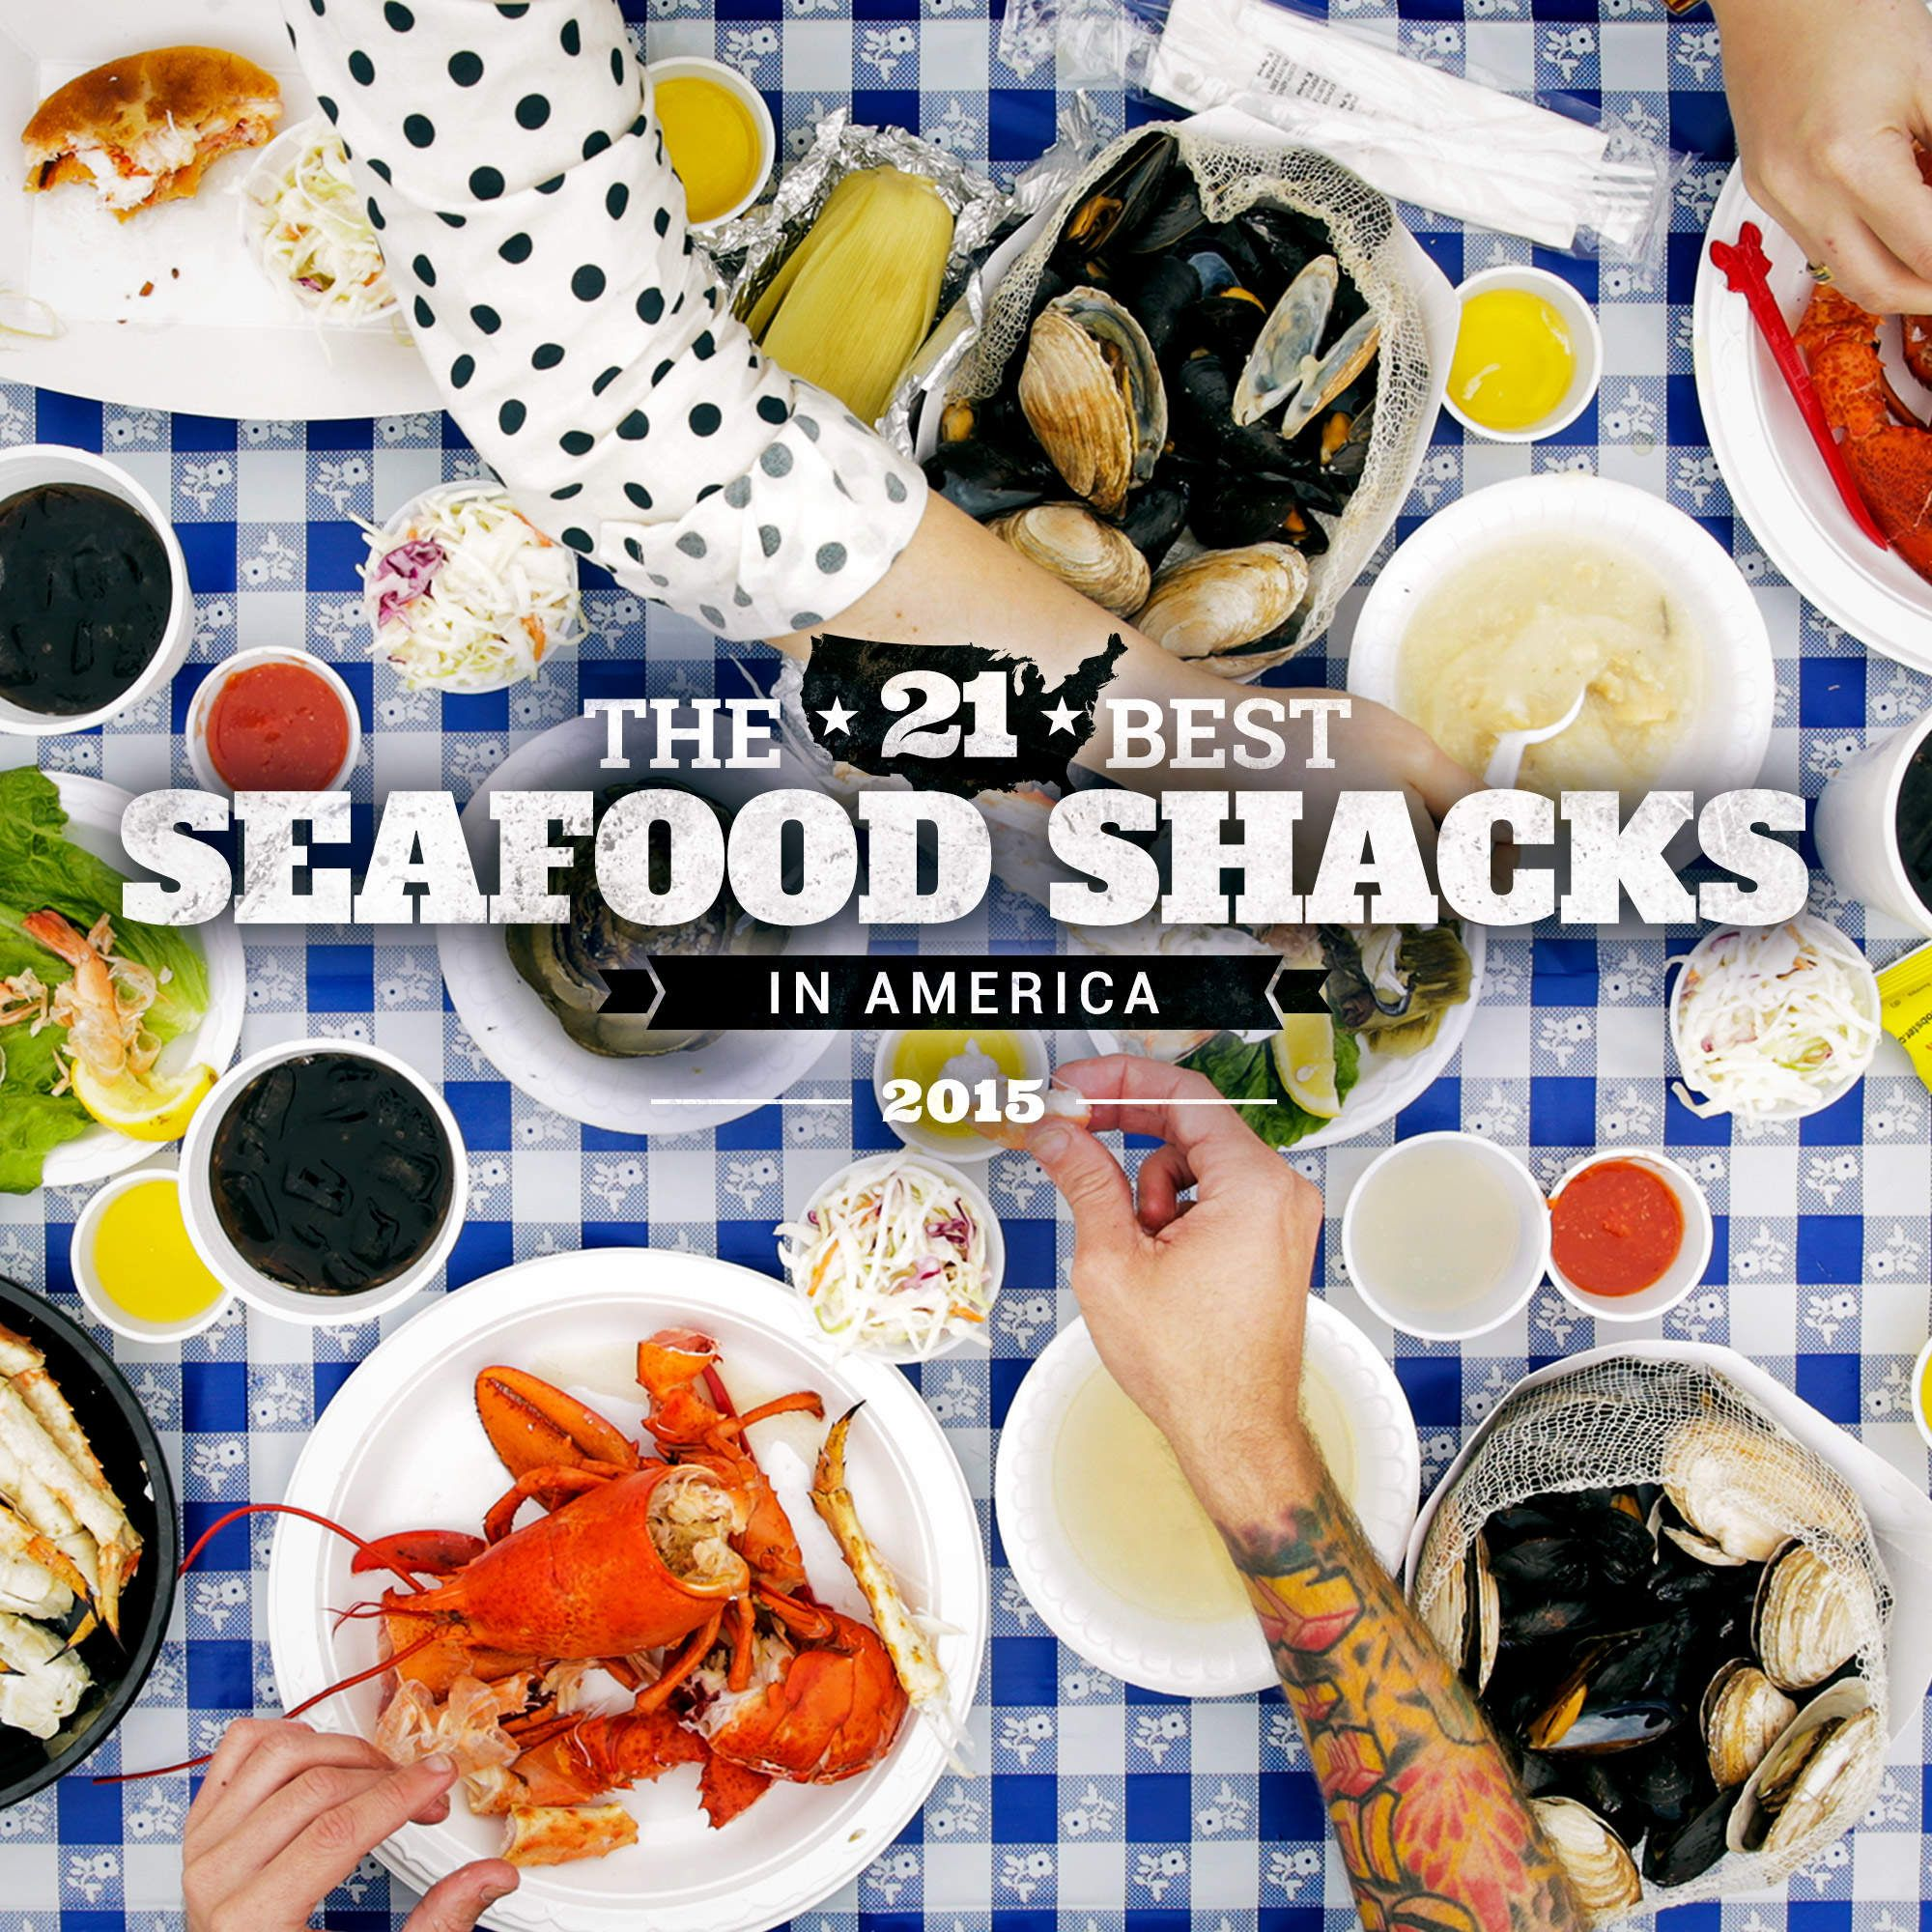 Tides Tavern featured as one of the 21 Best Seafood Shacks in America by Thrillist.com!